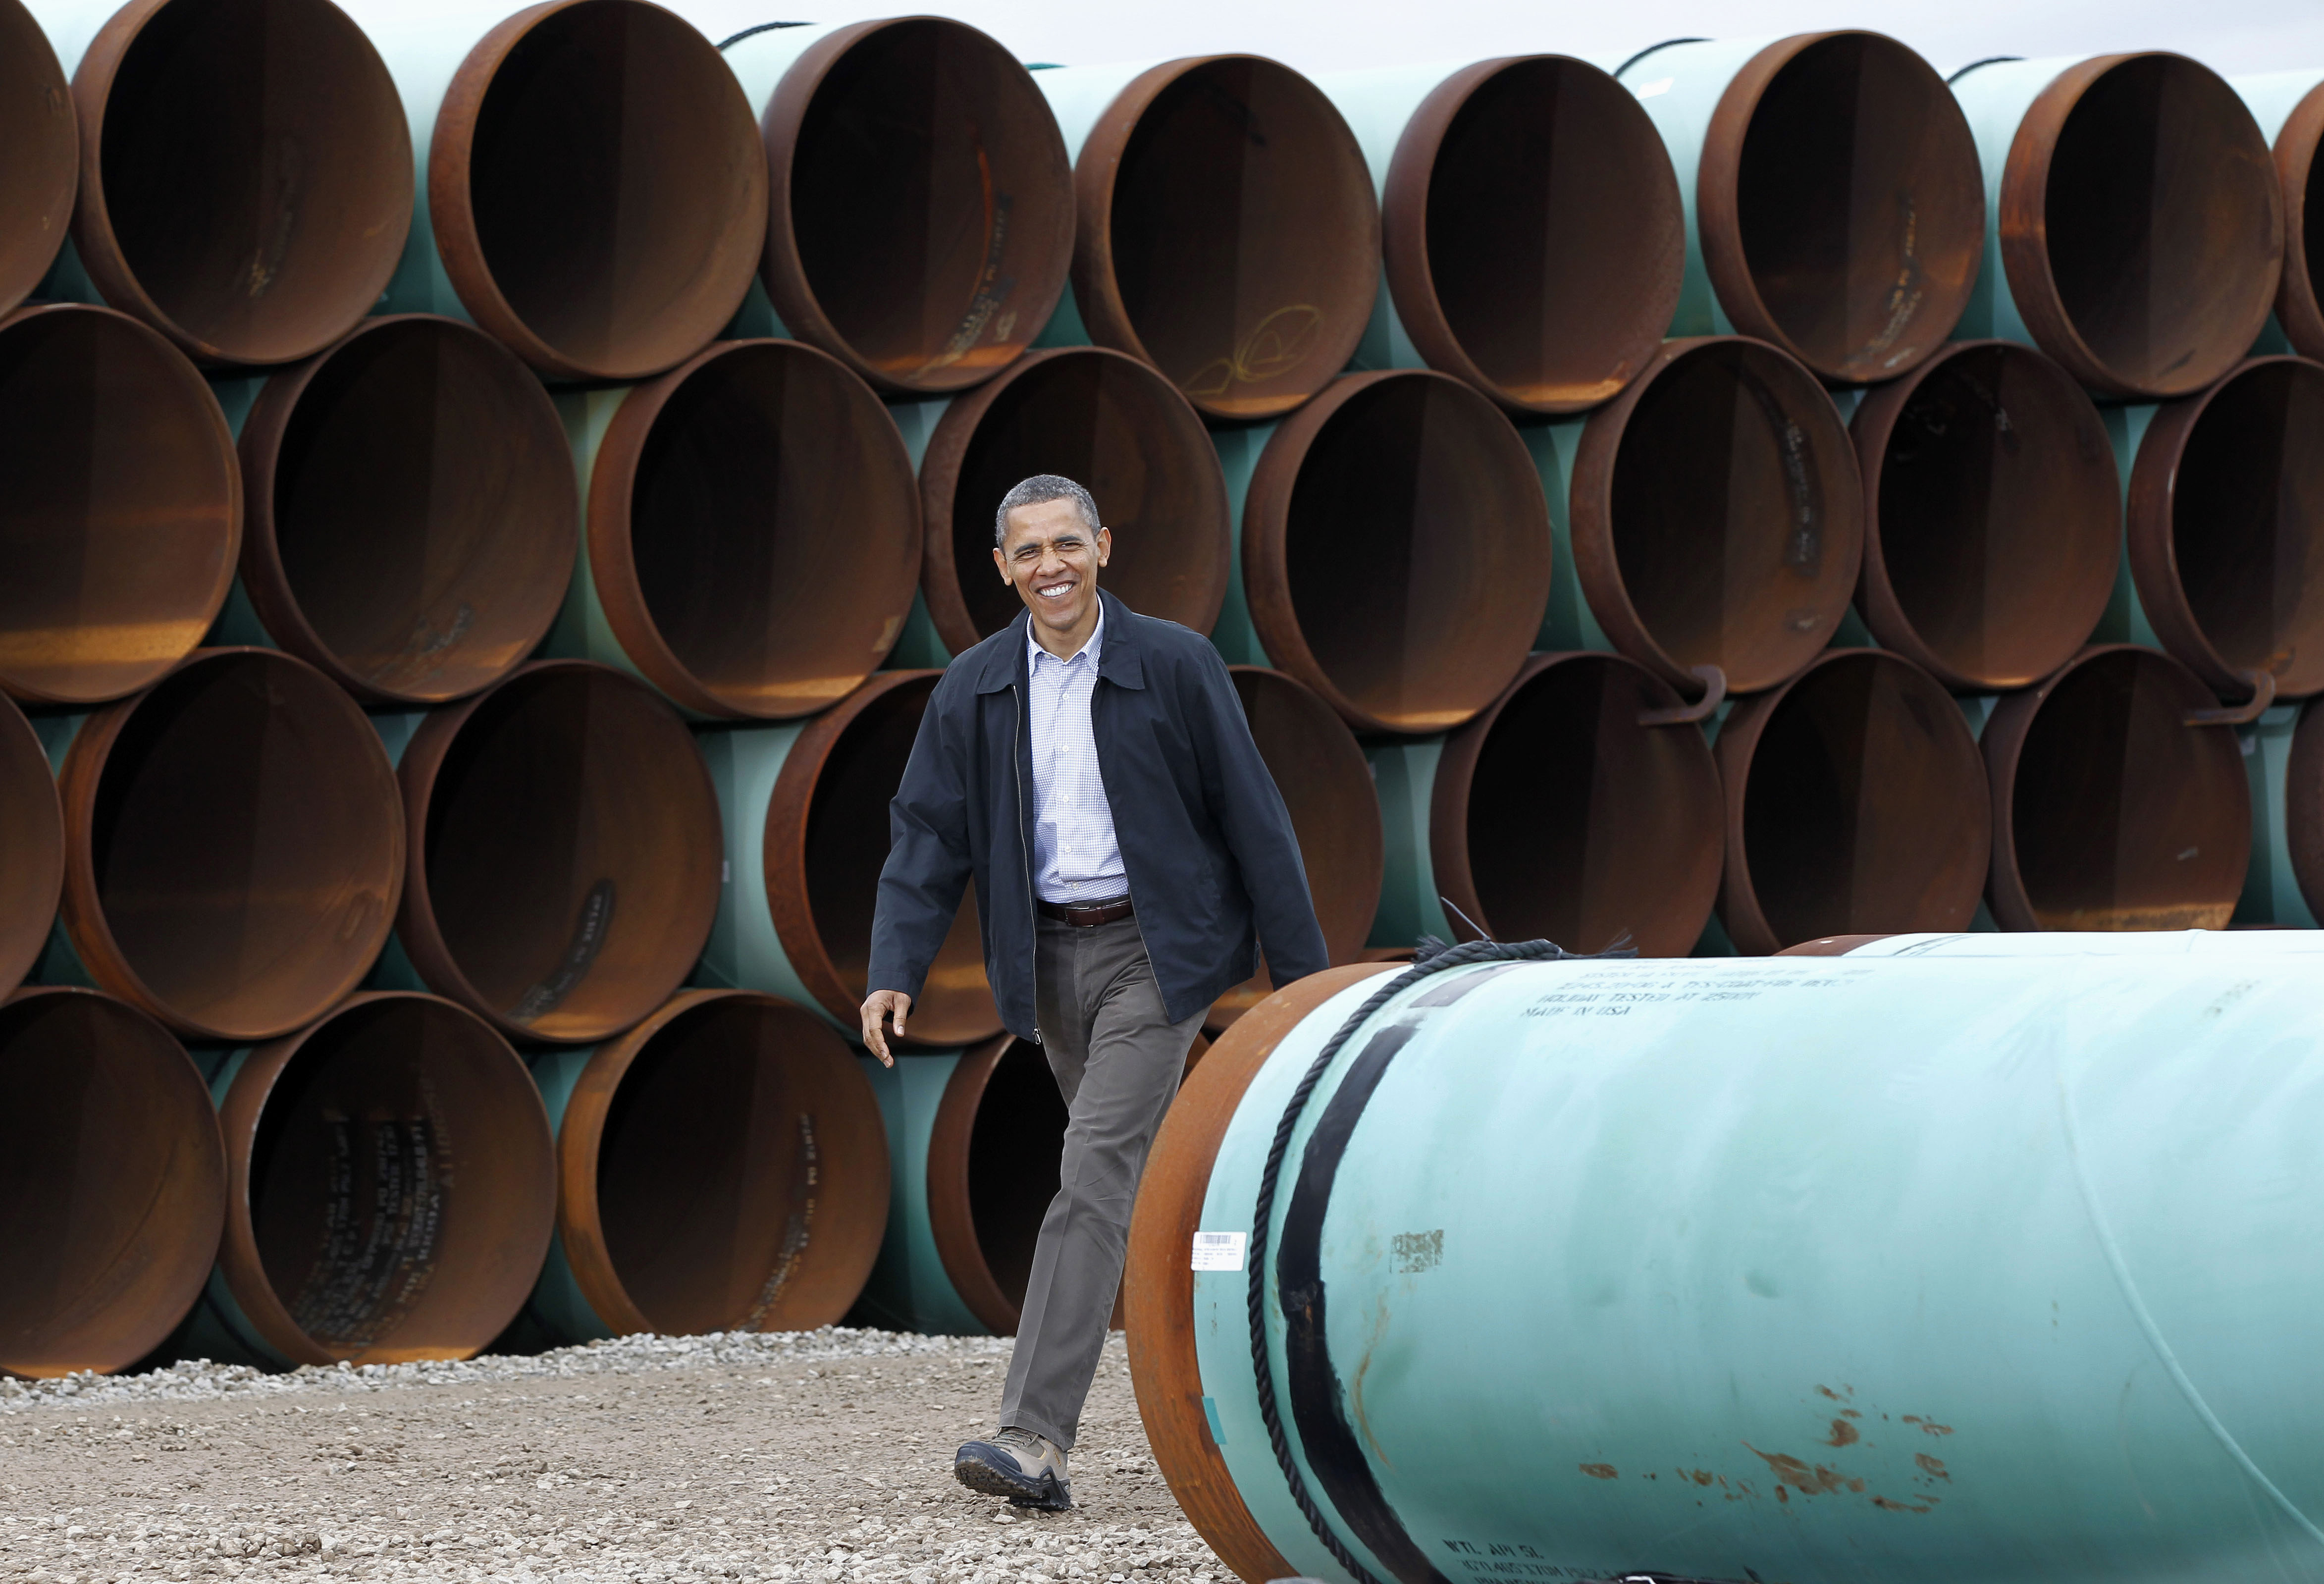 Keystone XL Pipeline Pollution May Be 4 Times More Than Estimate: Study